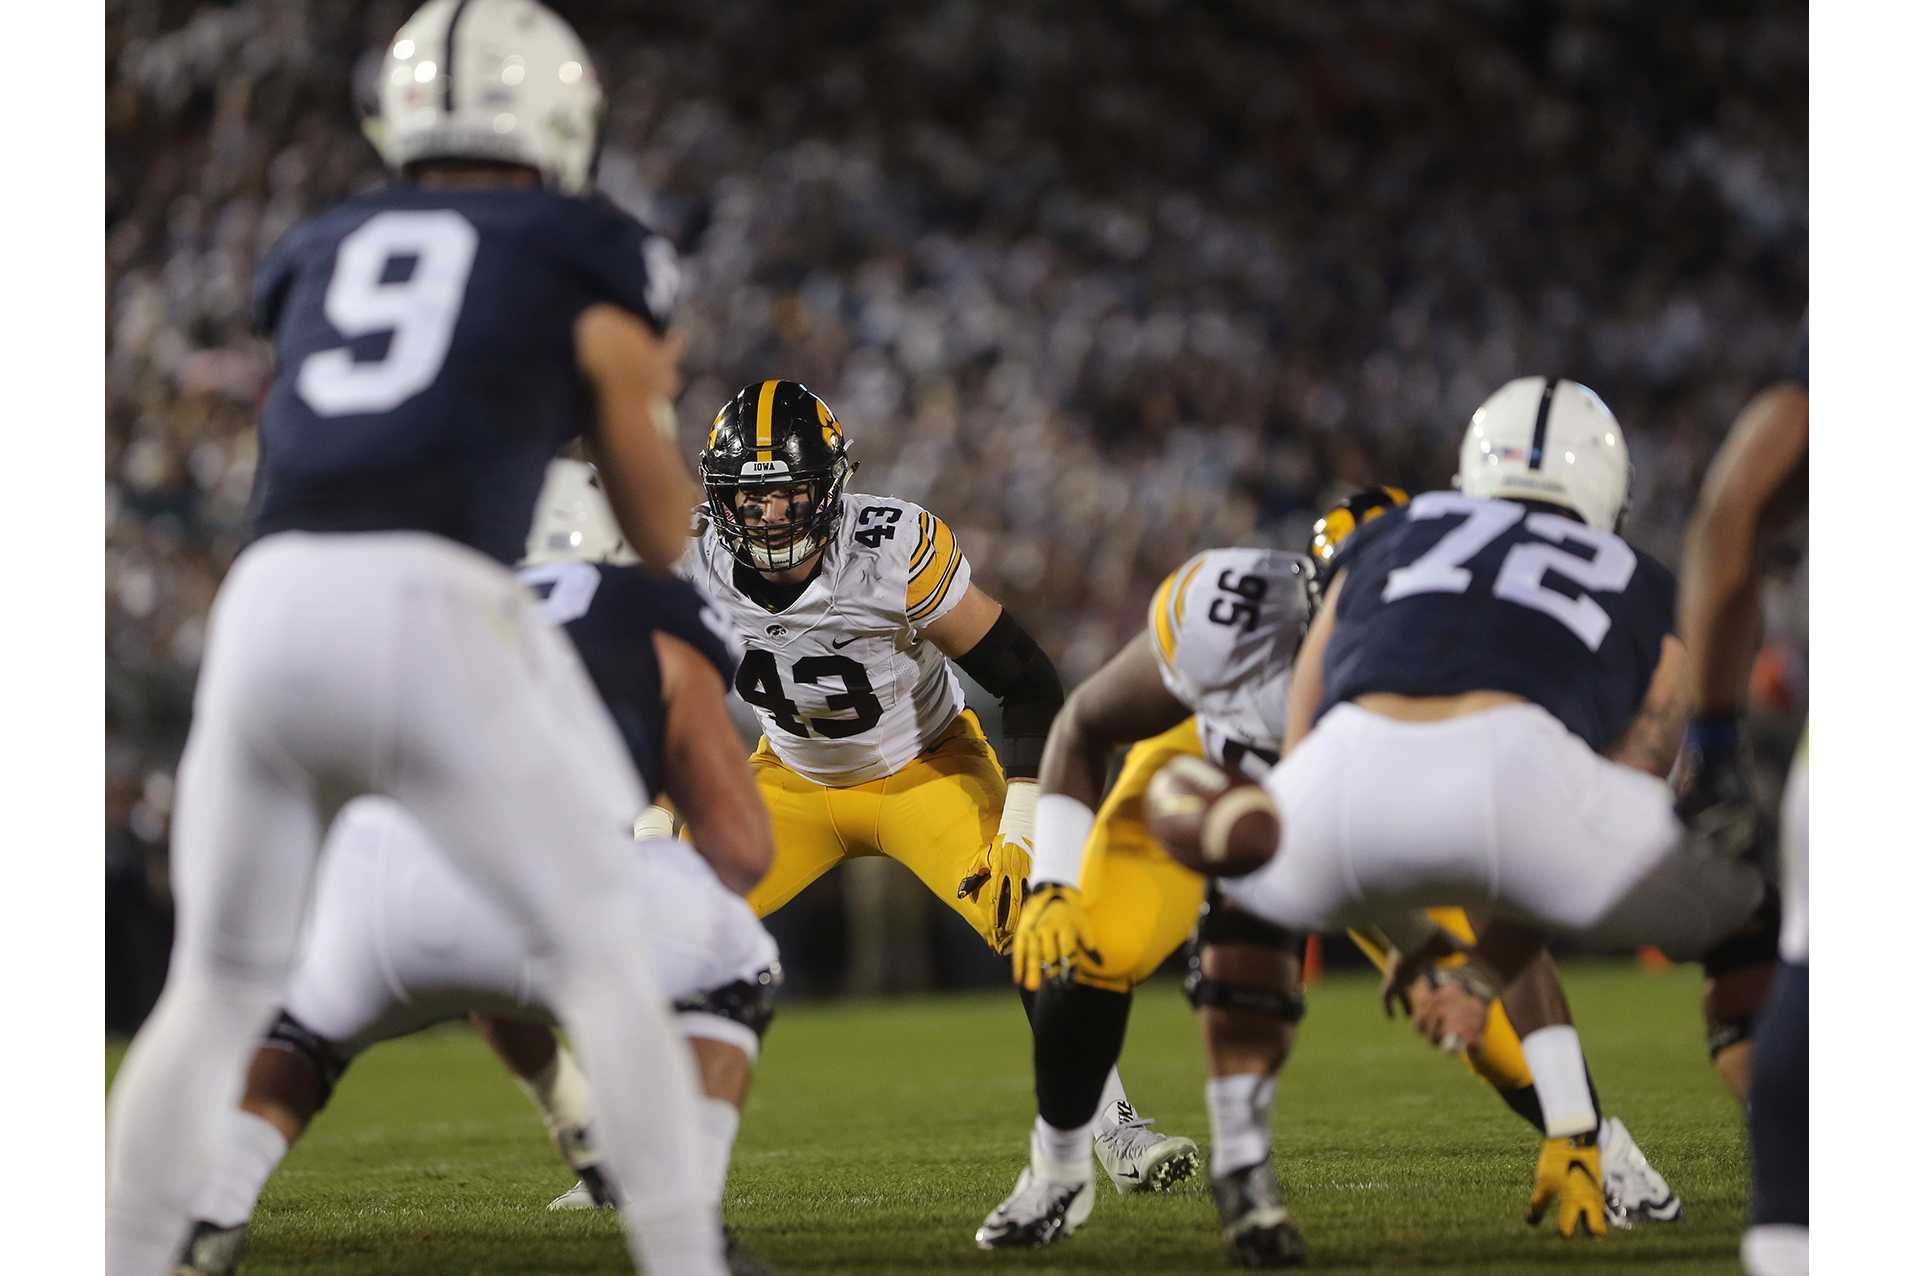 Iowa defensive linebacker Josey Jewell stares down Penn State quarterback Trace McSorley during the Iowa-Penn State game in Beaver Stadium in College State on Saturday, Nov. 5, 2016. The Nittany Lions defeated the Hawkeyes, 41-14. (The Daily Iowan/Margaret Kispert)